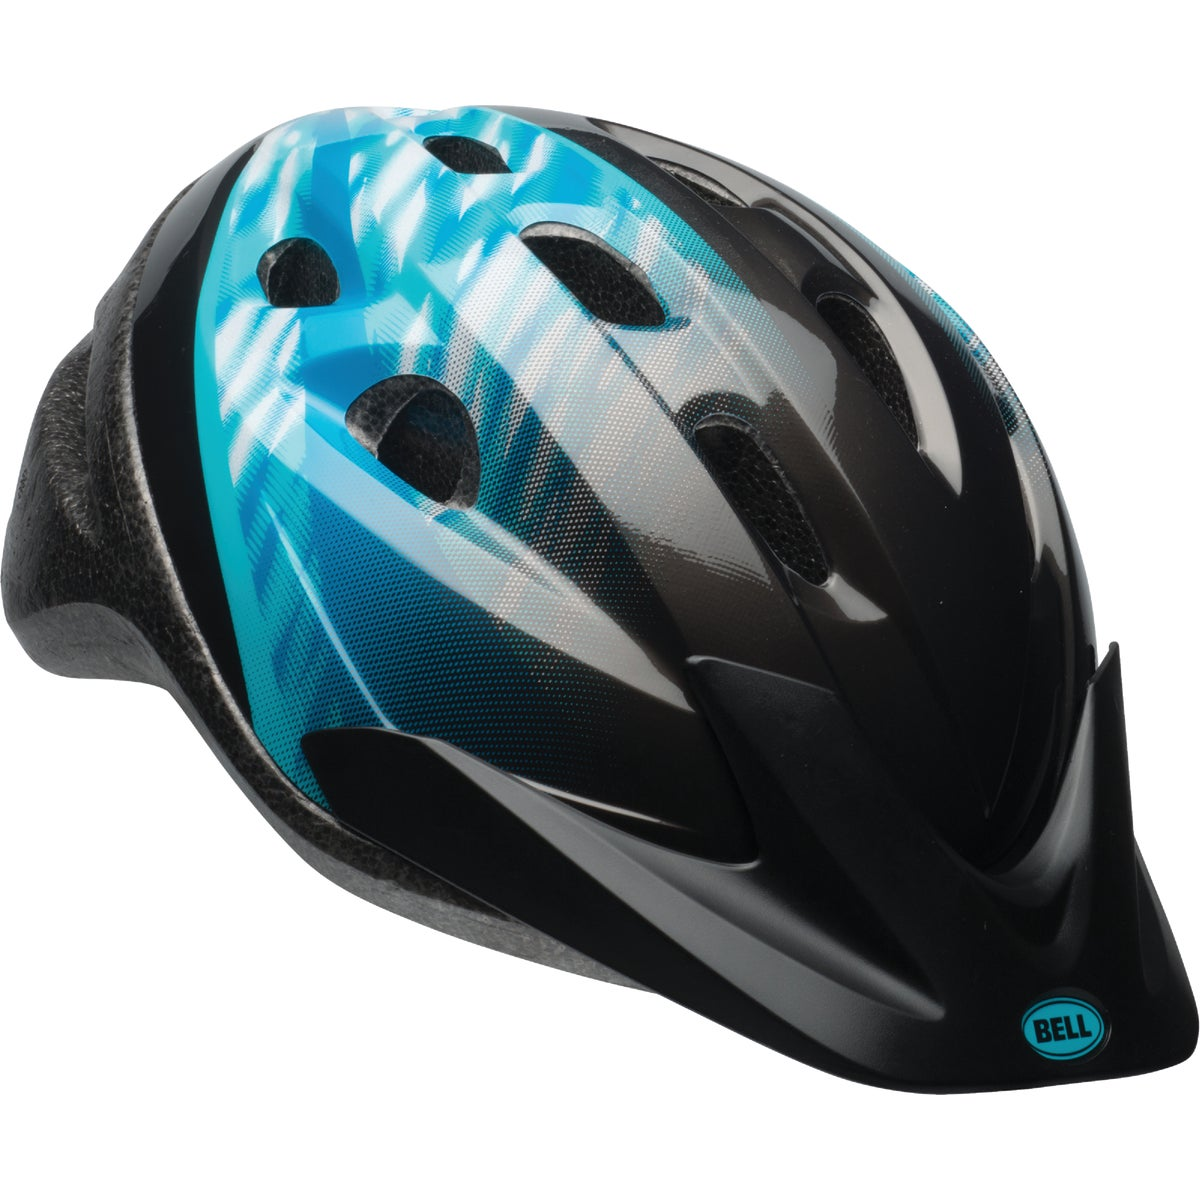 8+ GIRLS YOUTH HELMET - 7049693 by Bell Sports